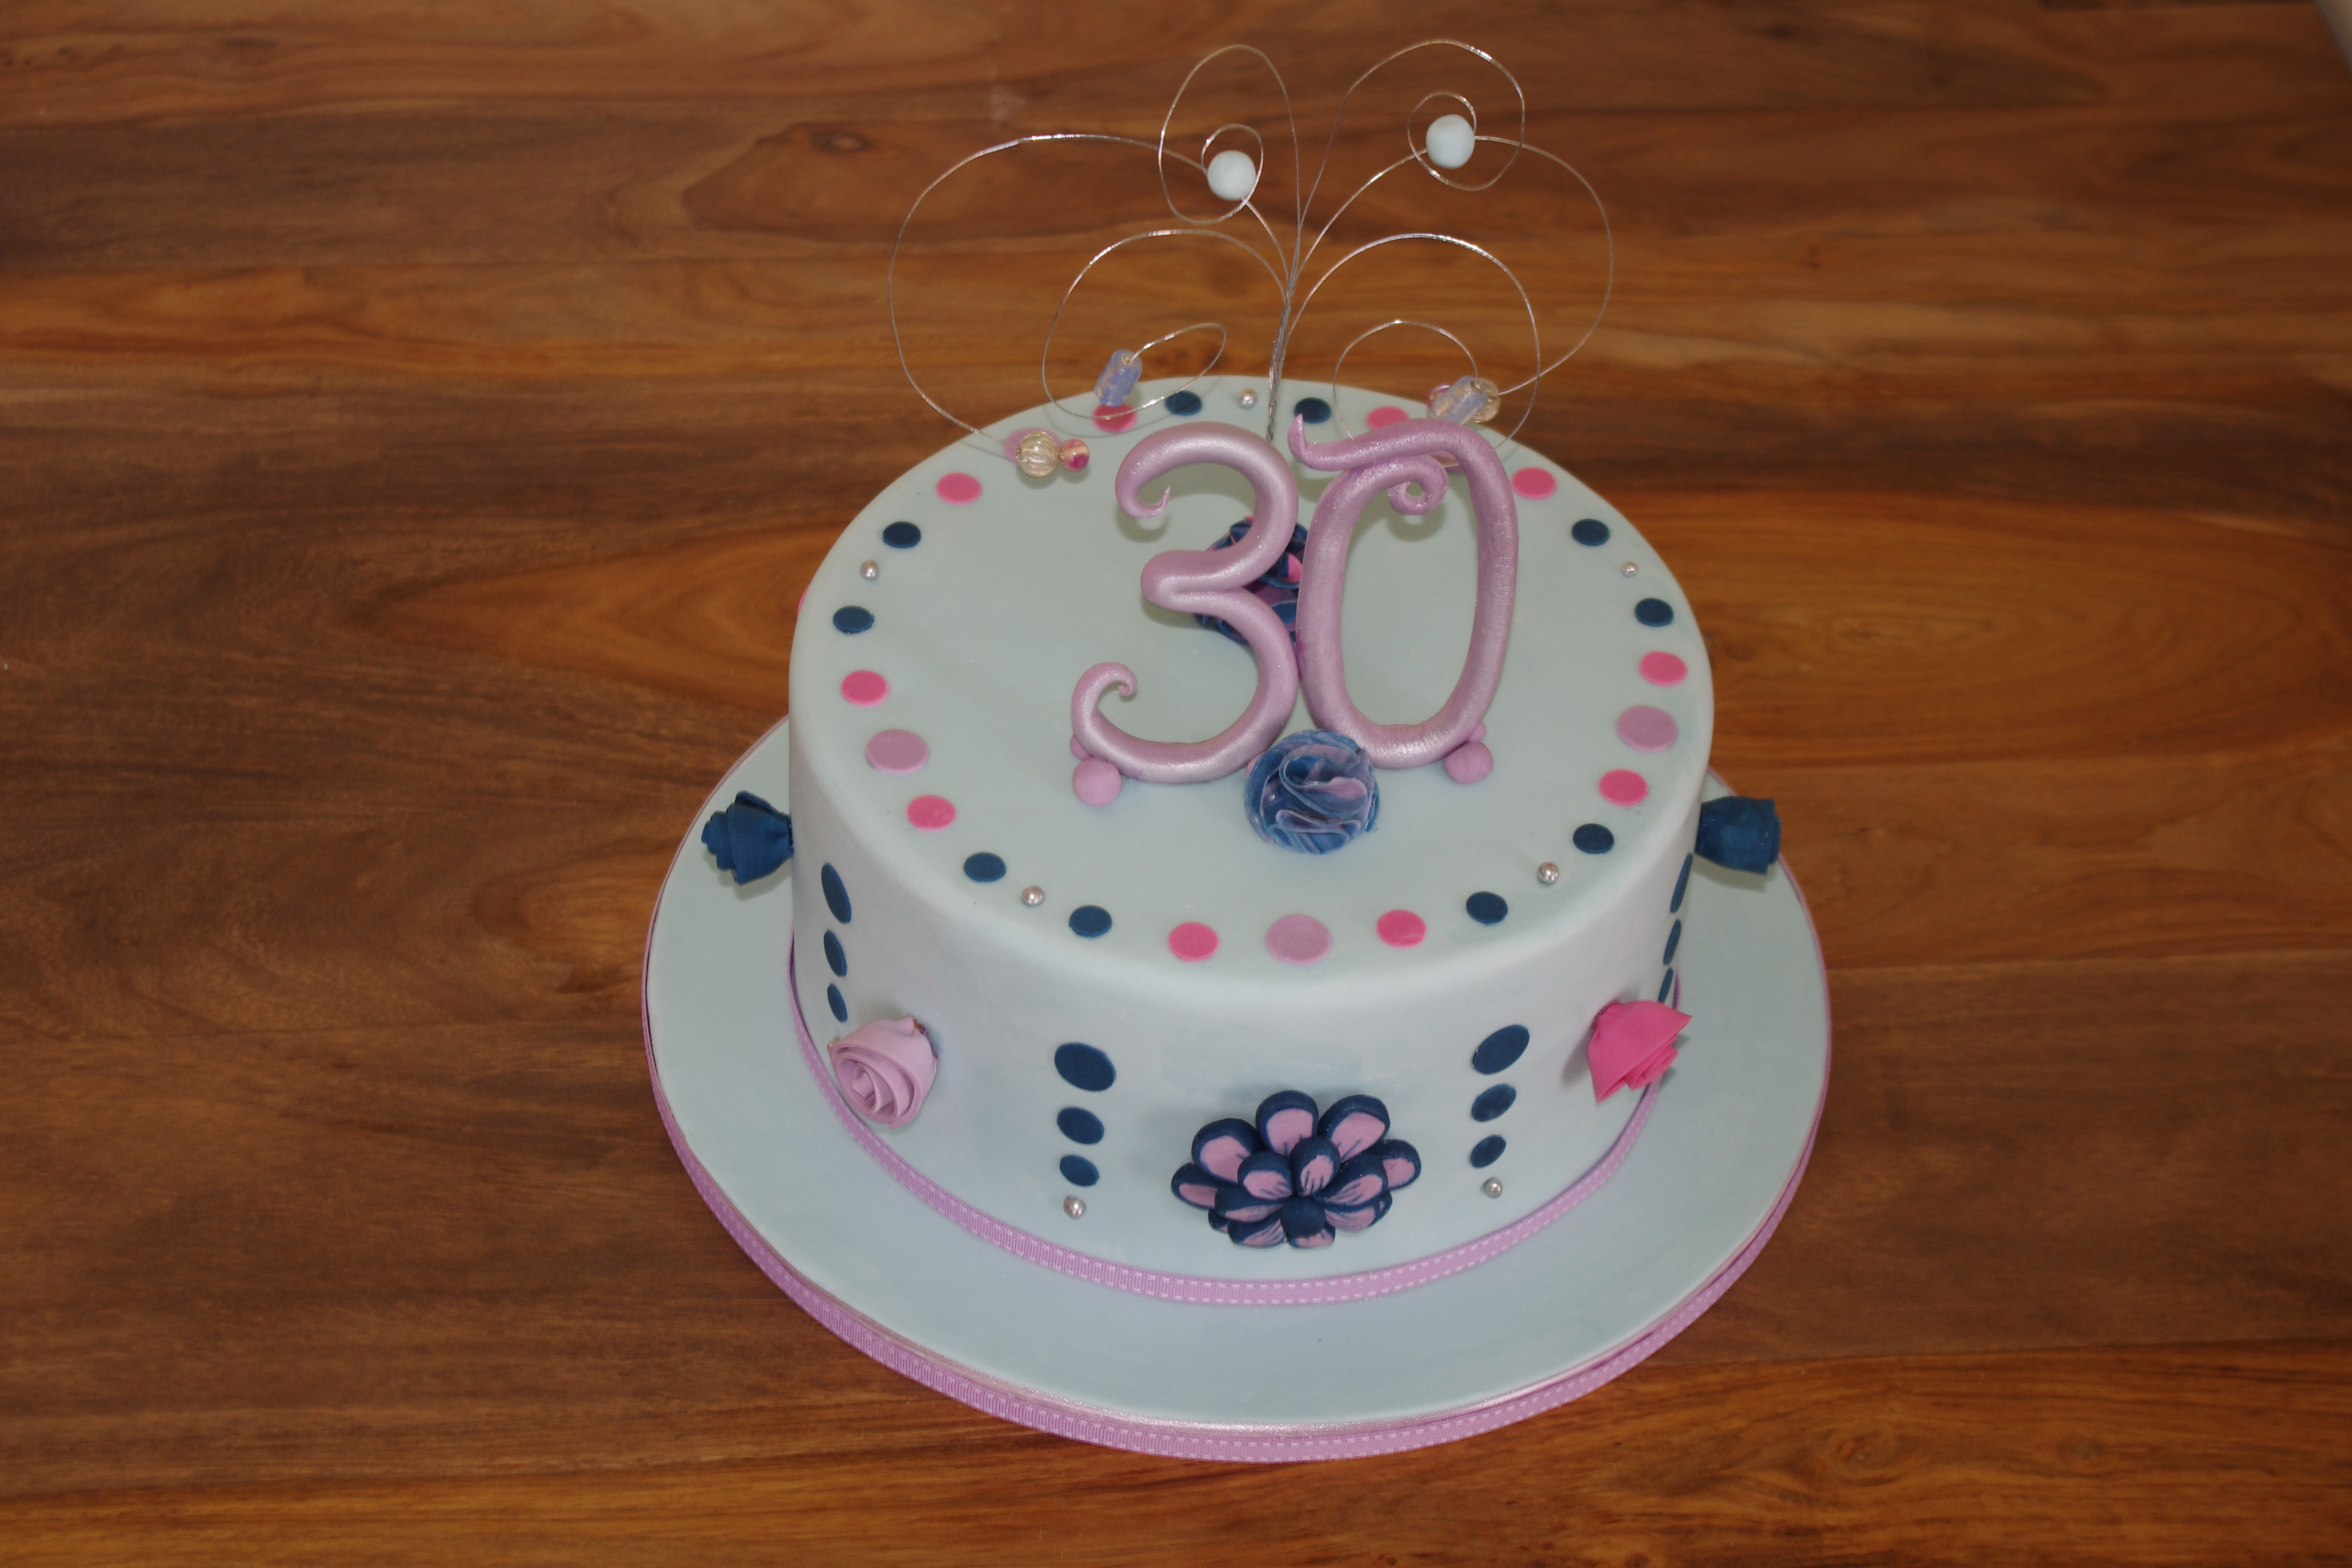 Floral 30th birthday cake